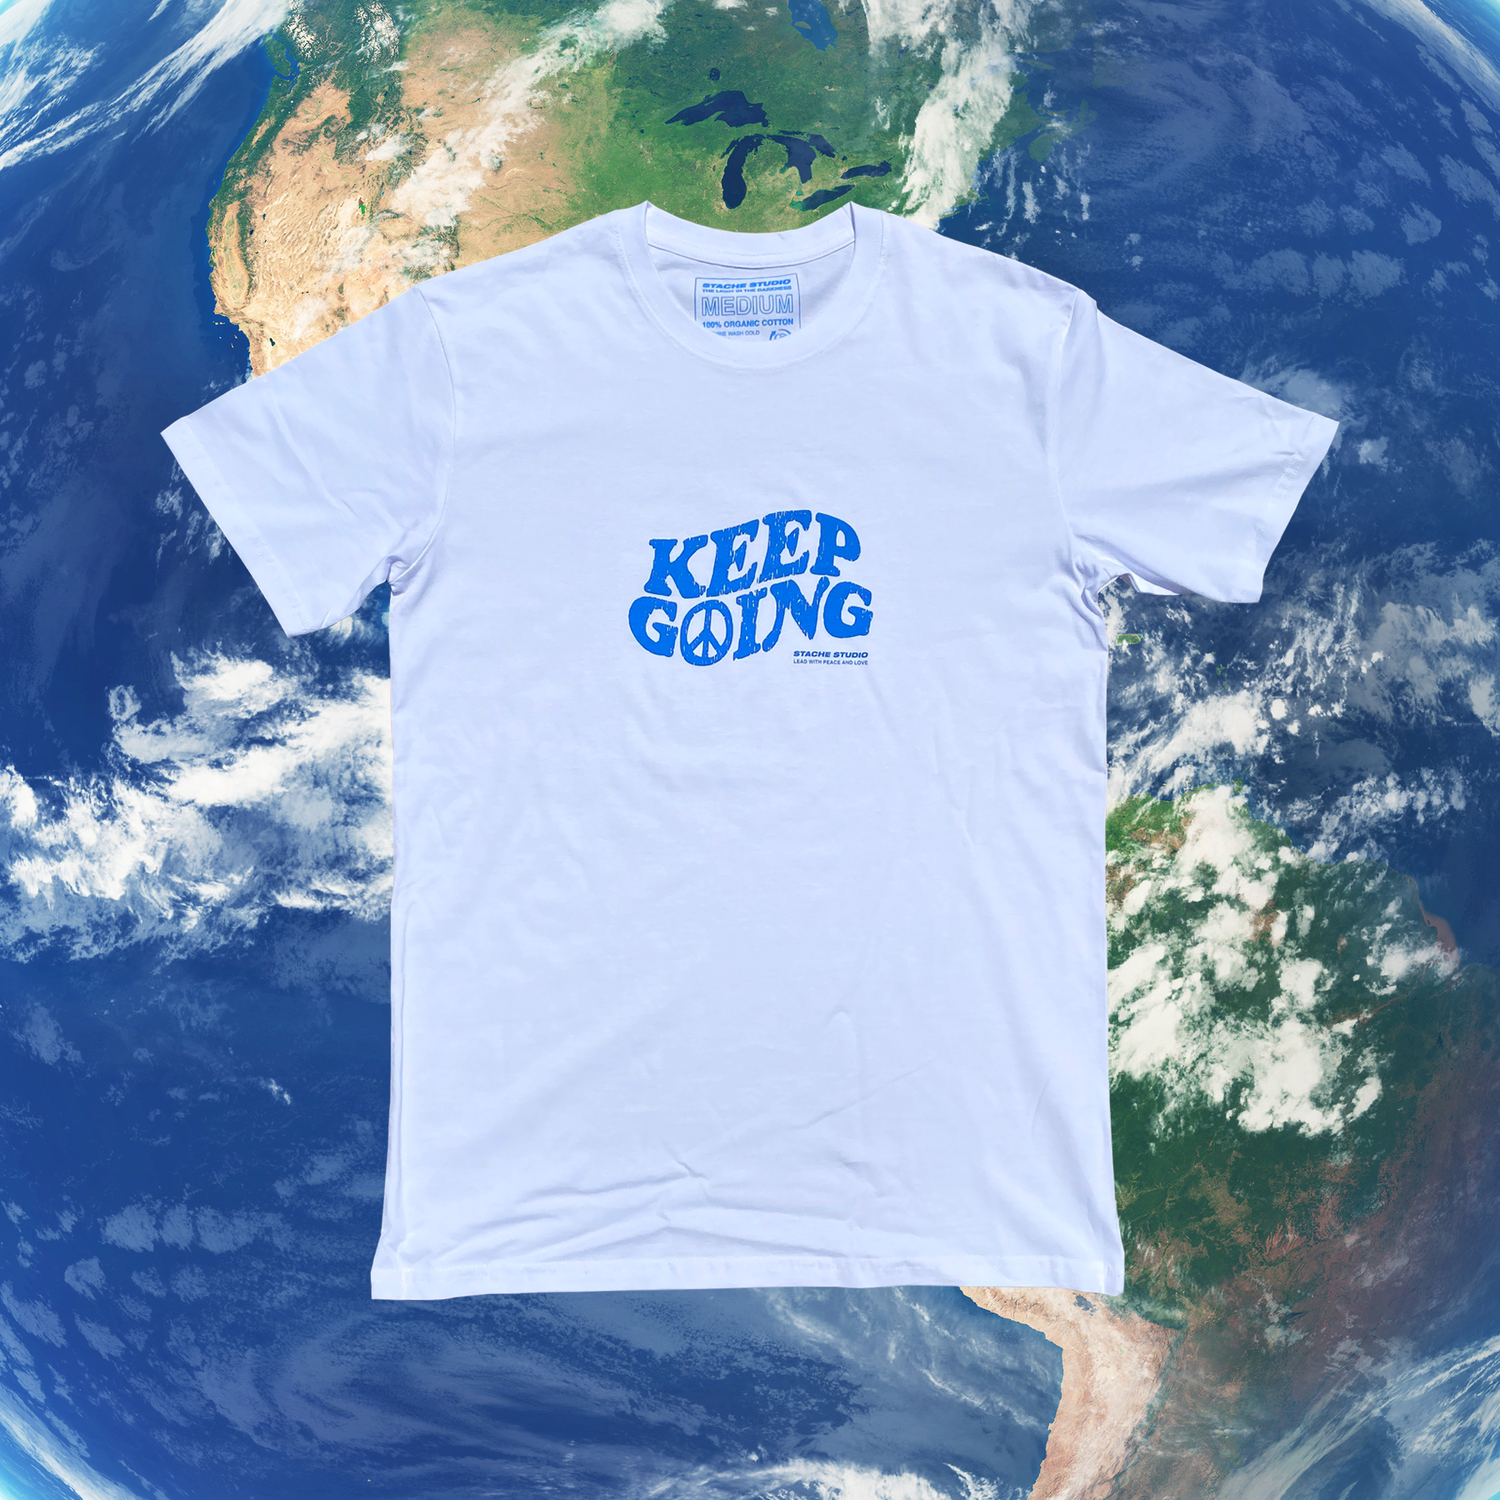 Image of Keep Going t-shirt